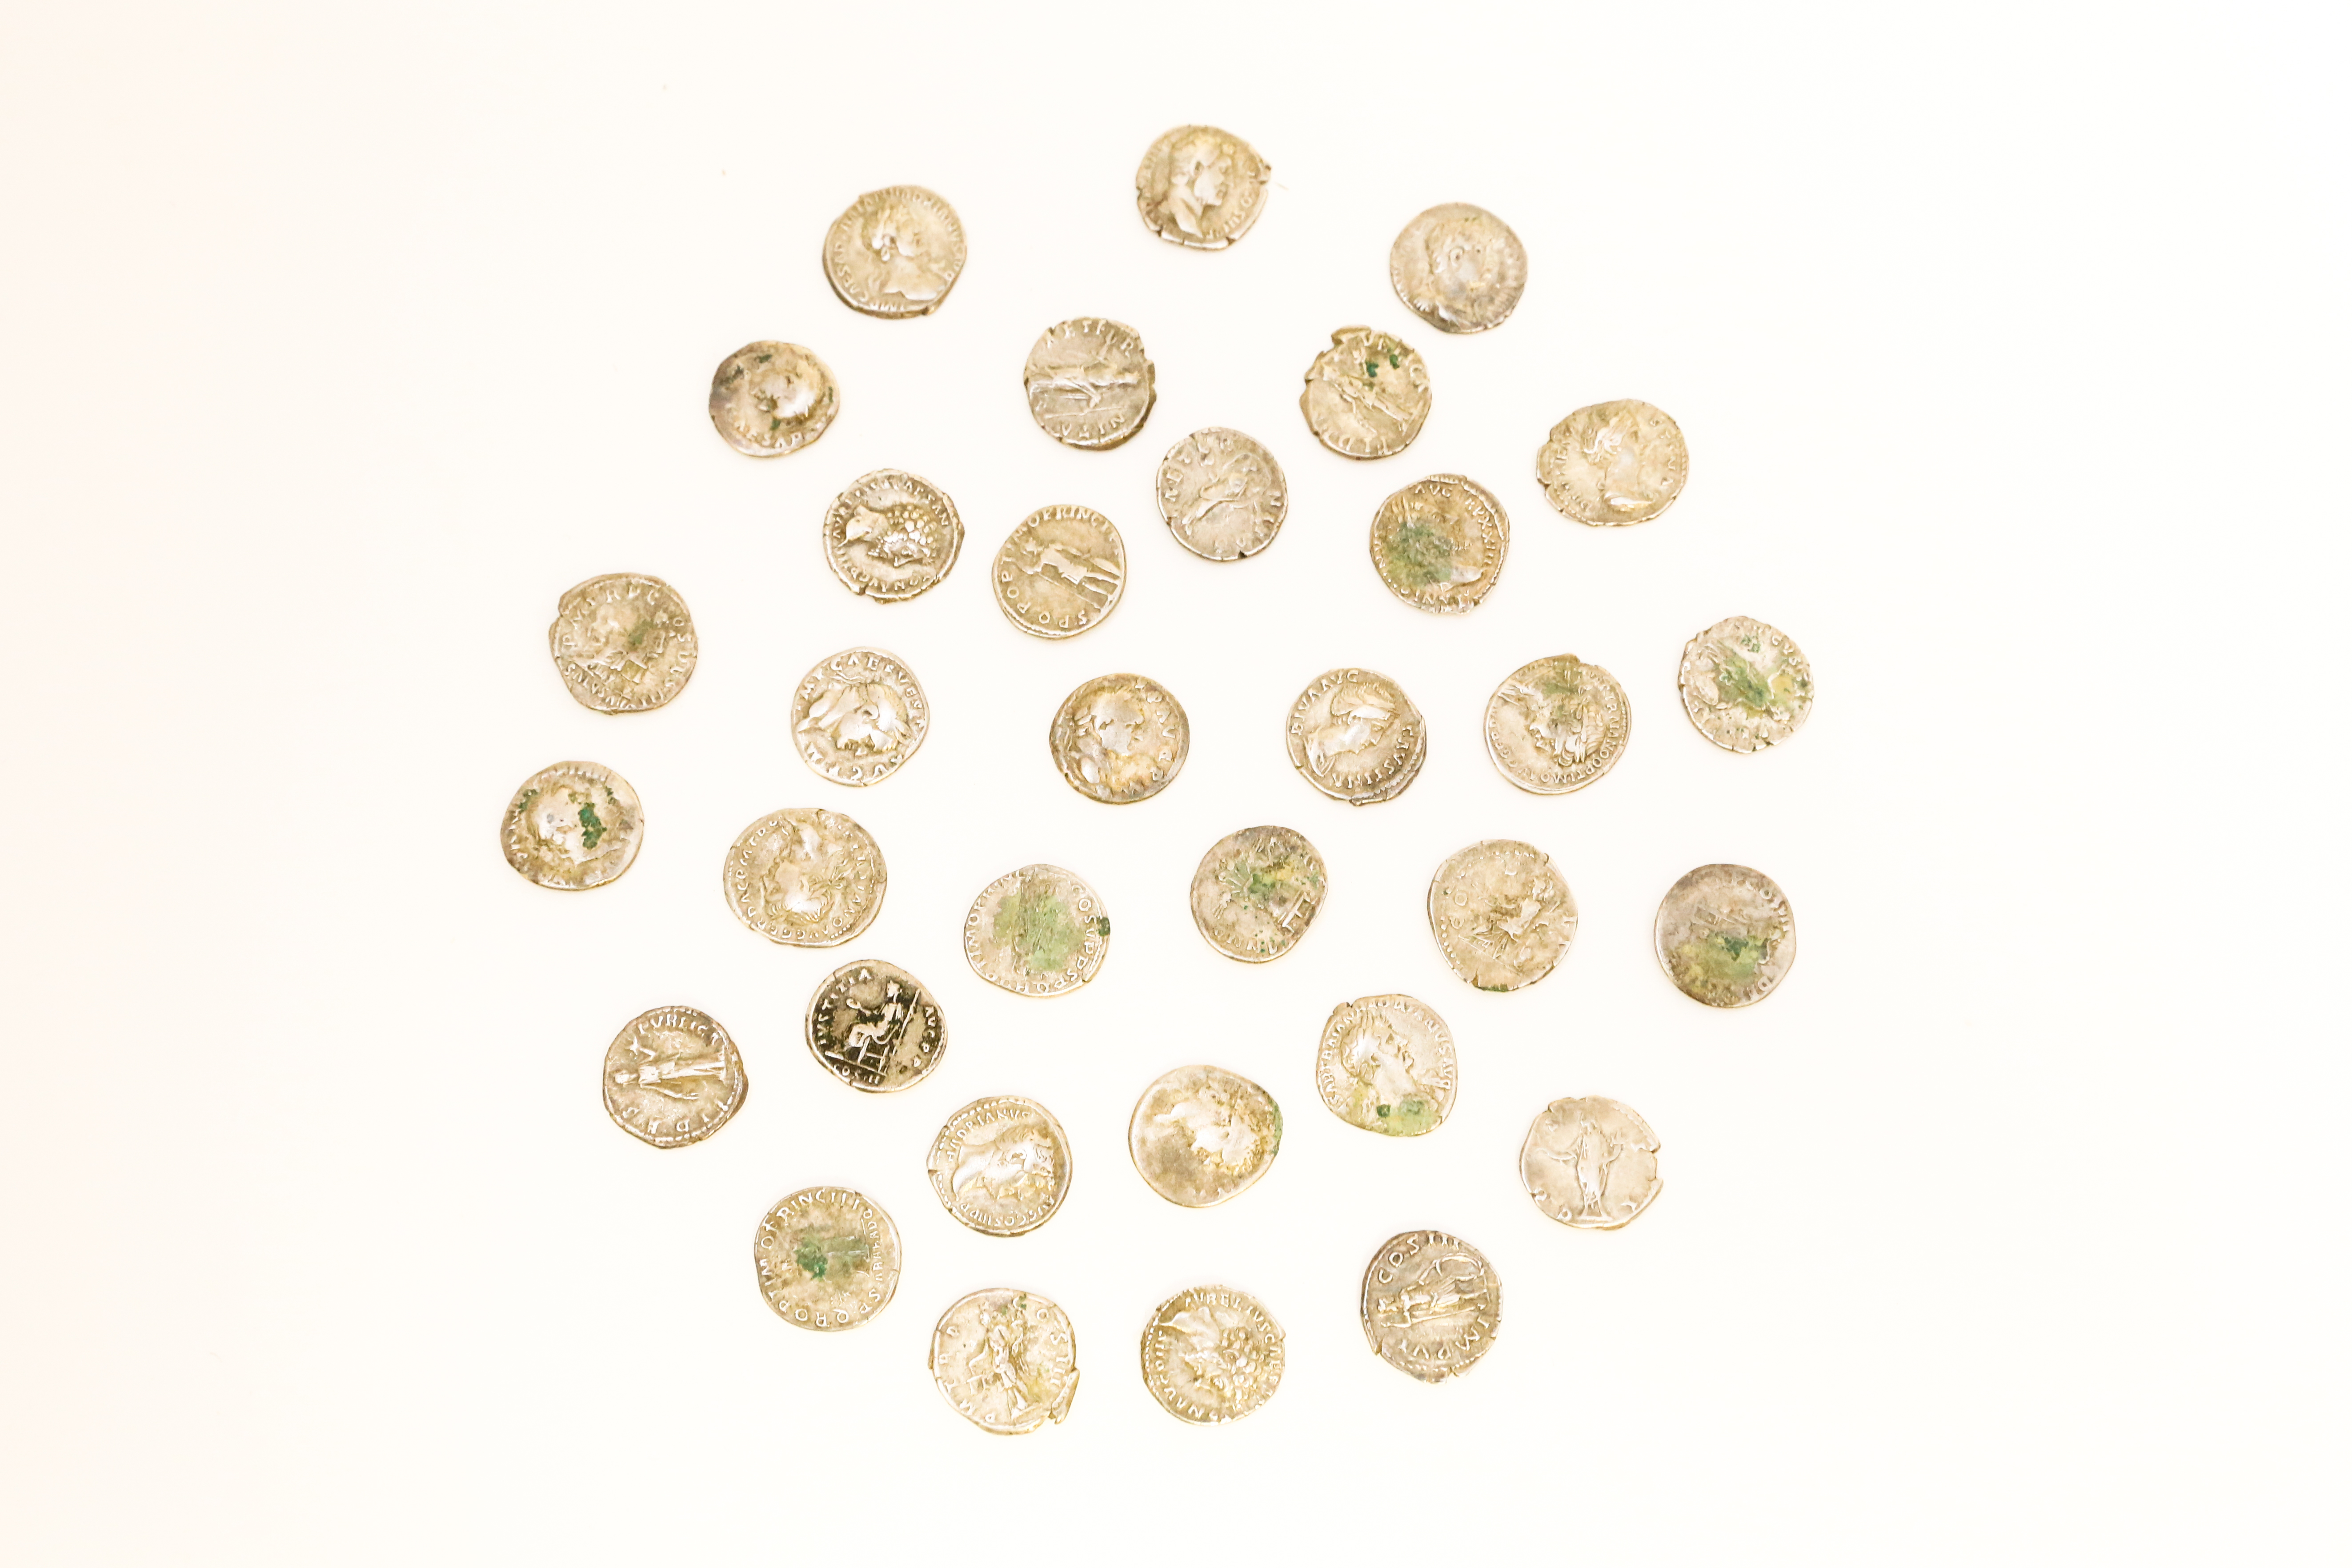 33 small metal coins. Roman emperor heads can be seen stamped on some of the coins. Some are tarnished.